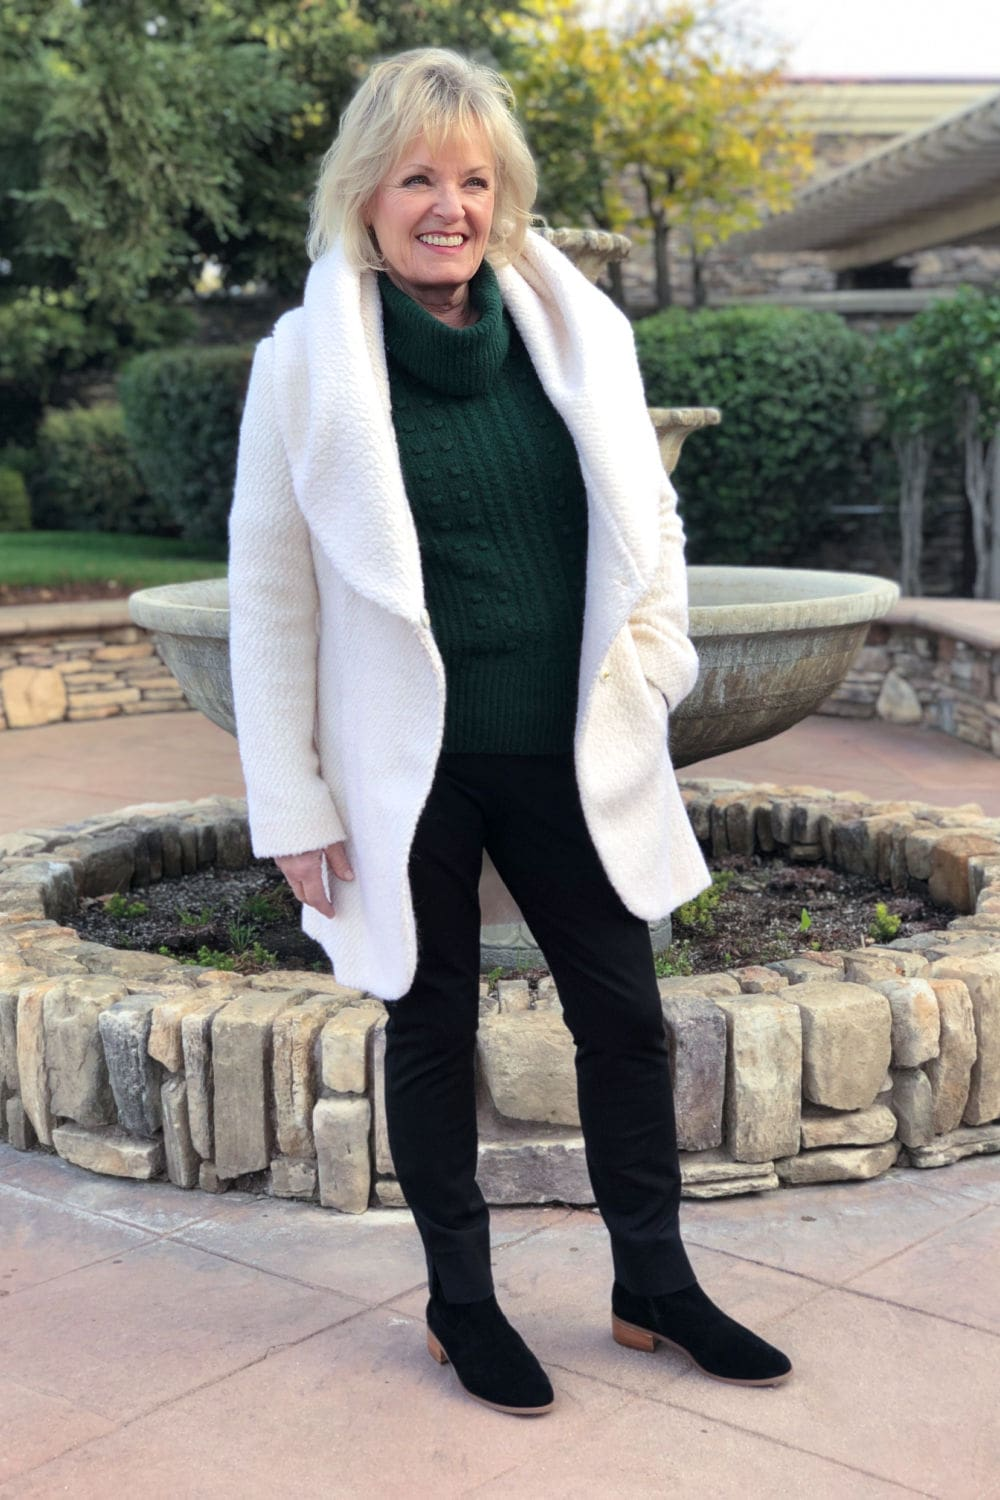 jennifer of a well styled life wearing ivory coat over green sweater and navy pants from Nordstrom